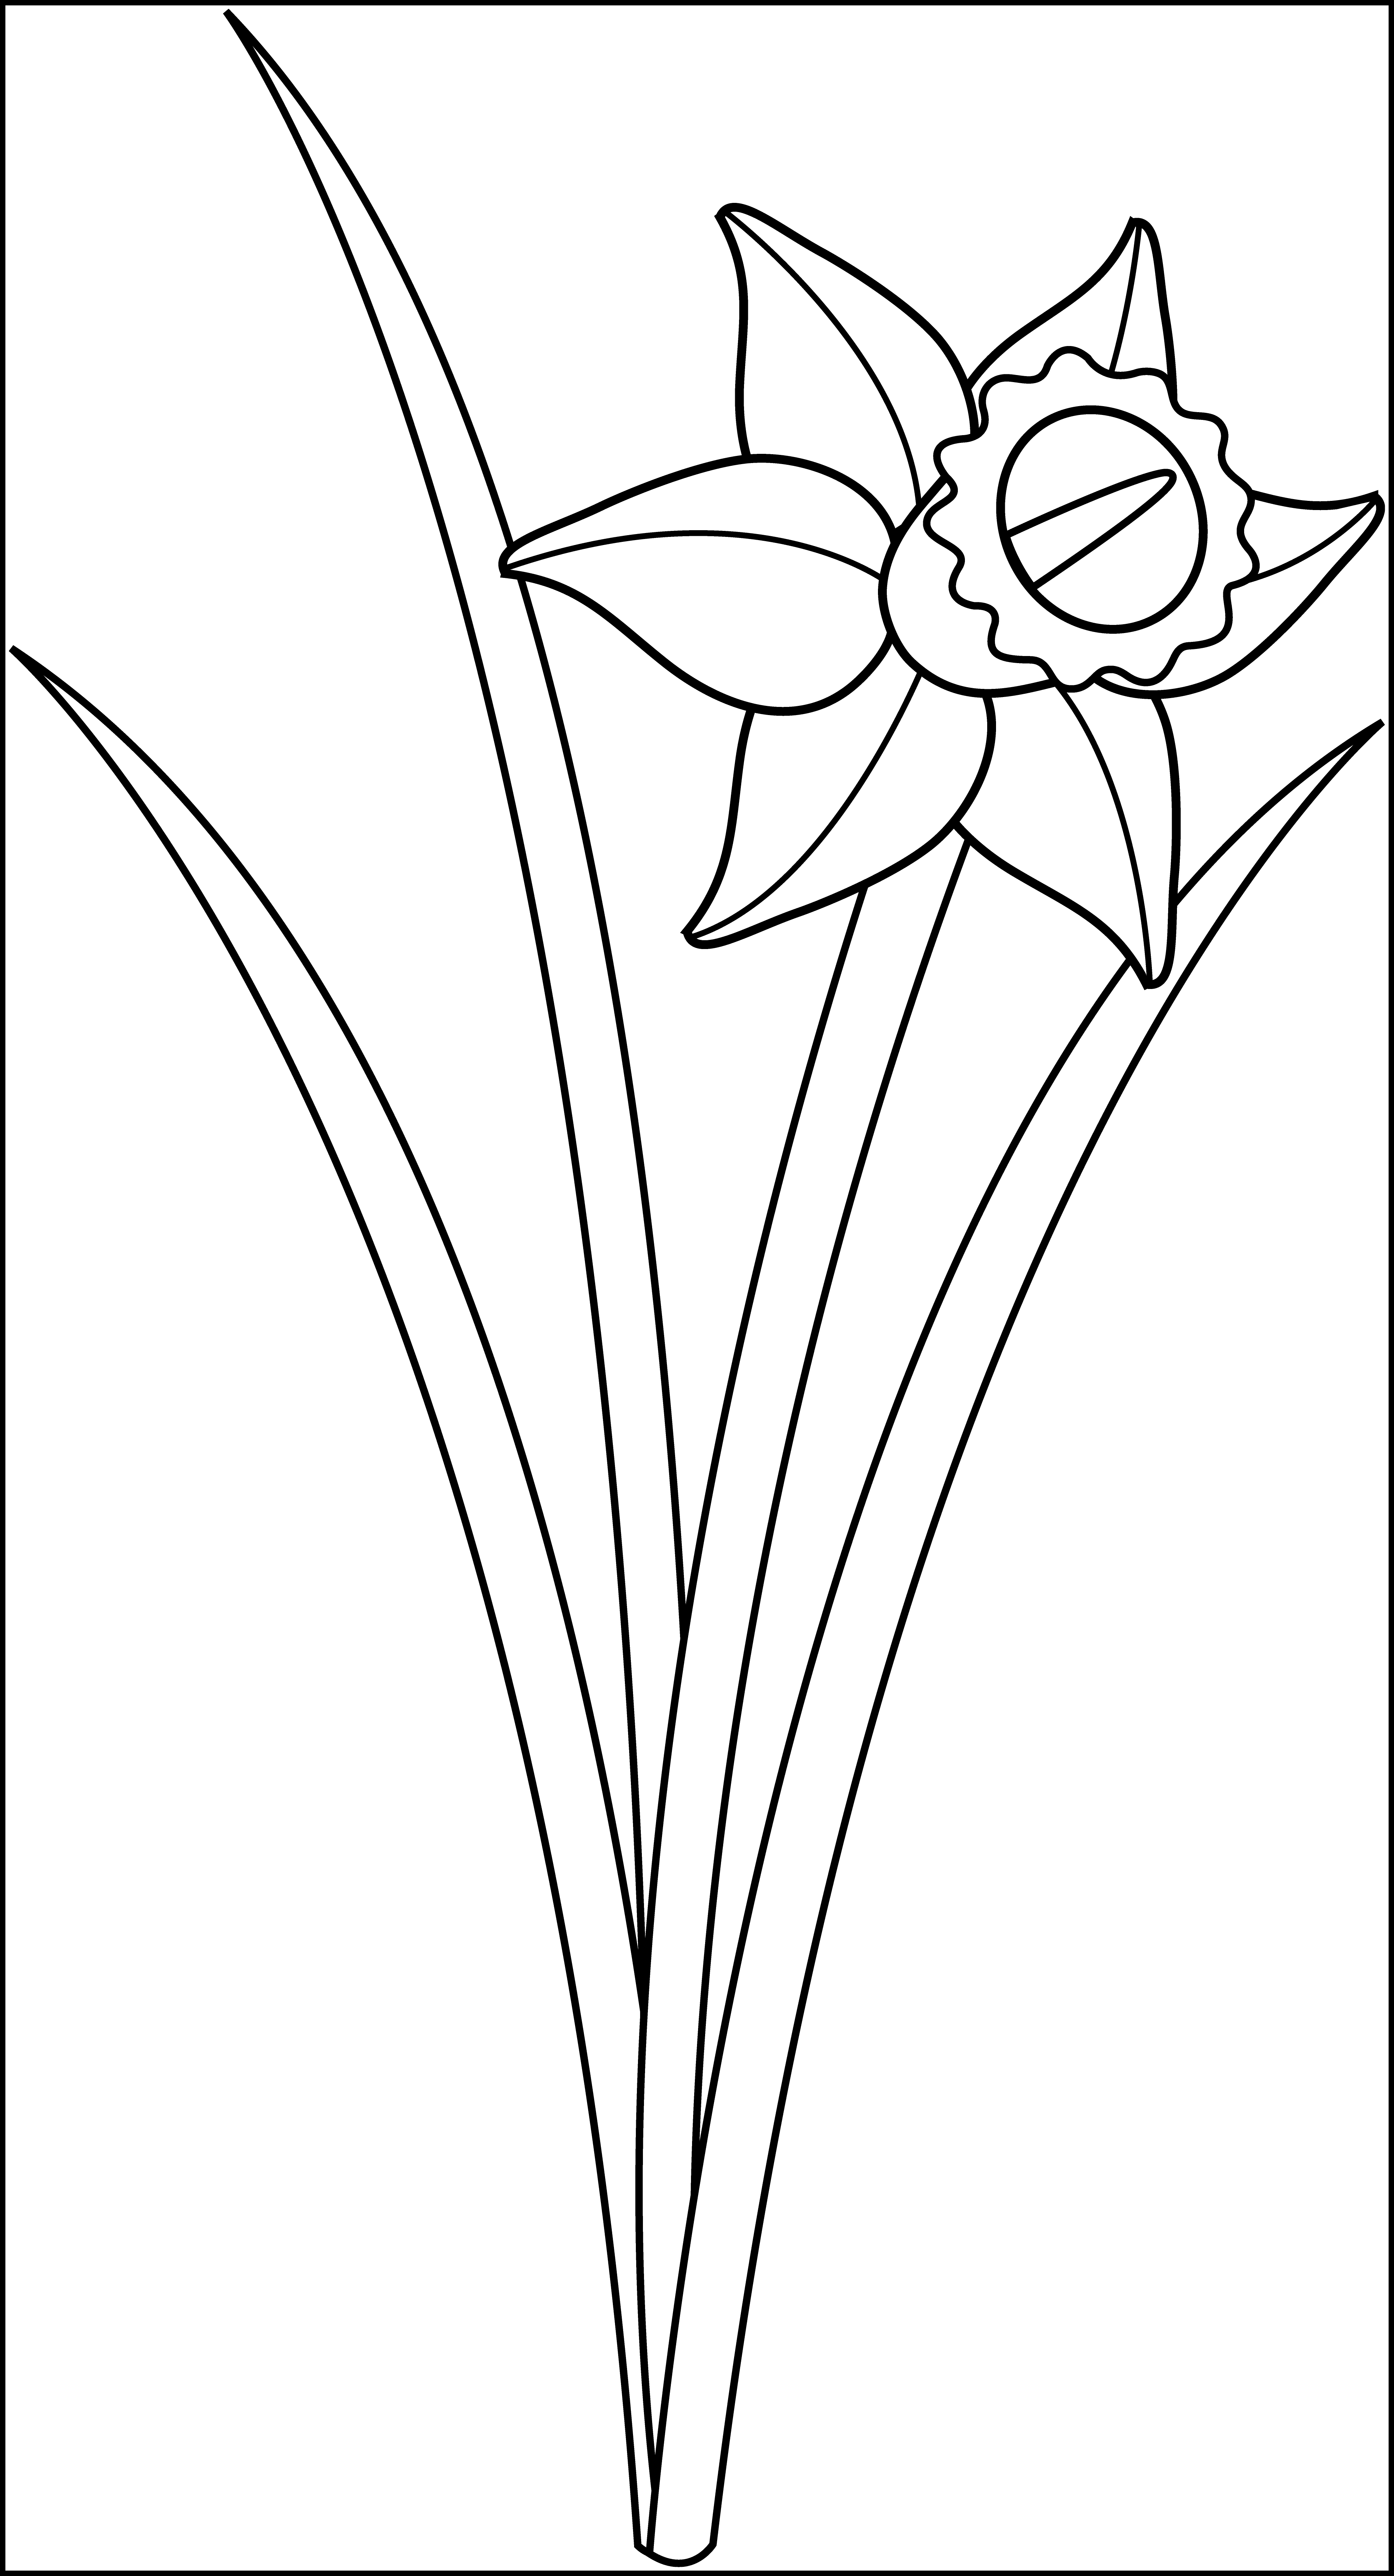 Daffodil clipart black and white 2 » Clipart Station.